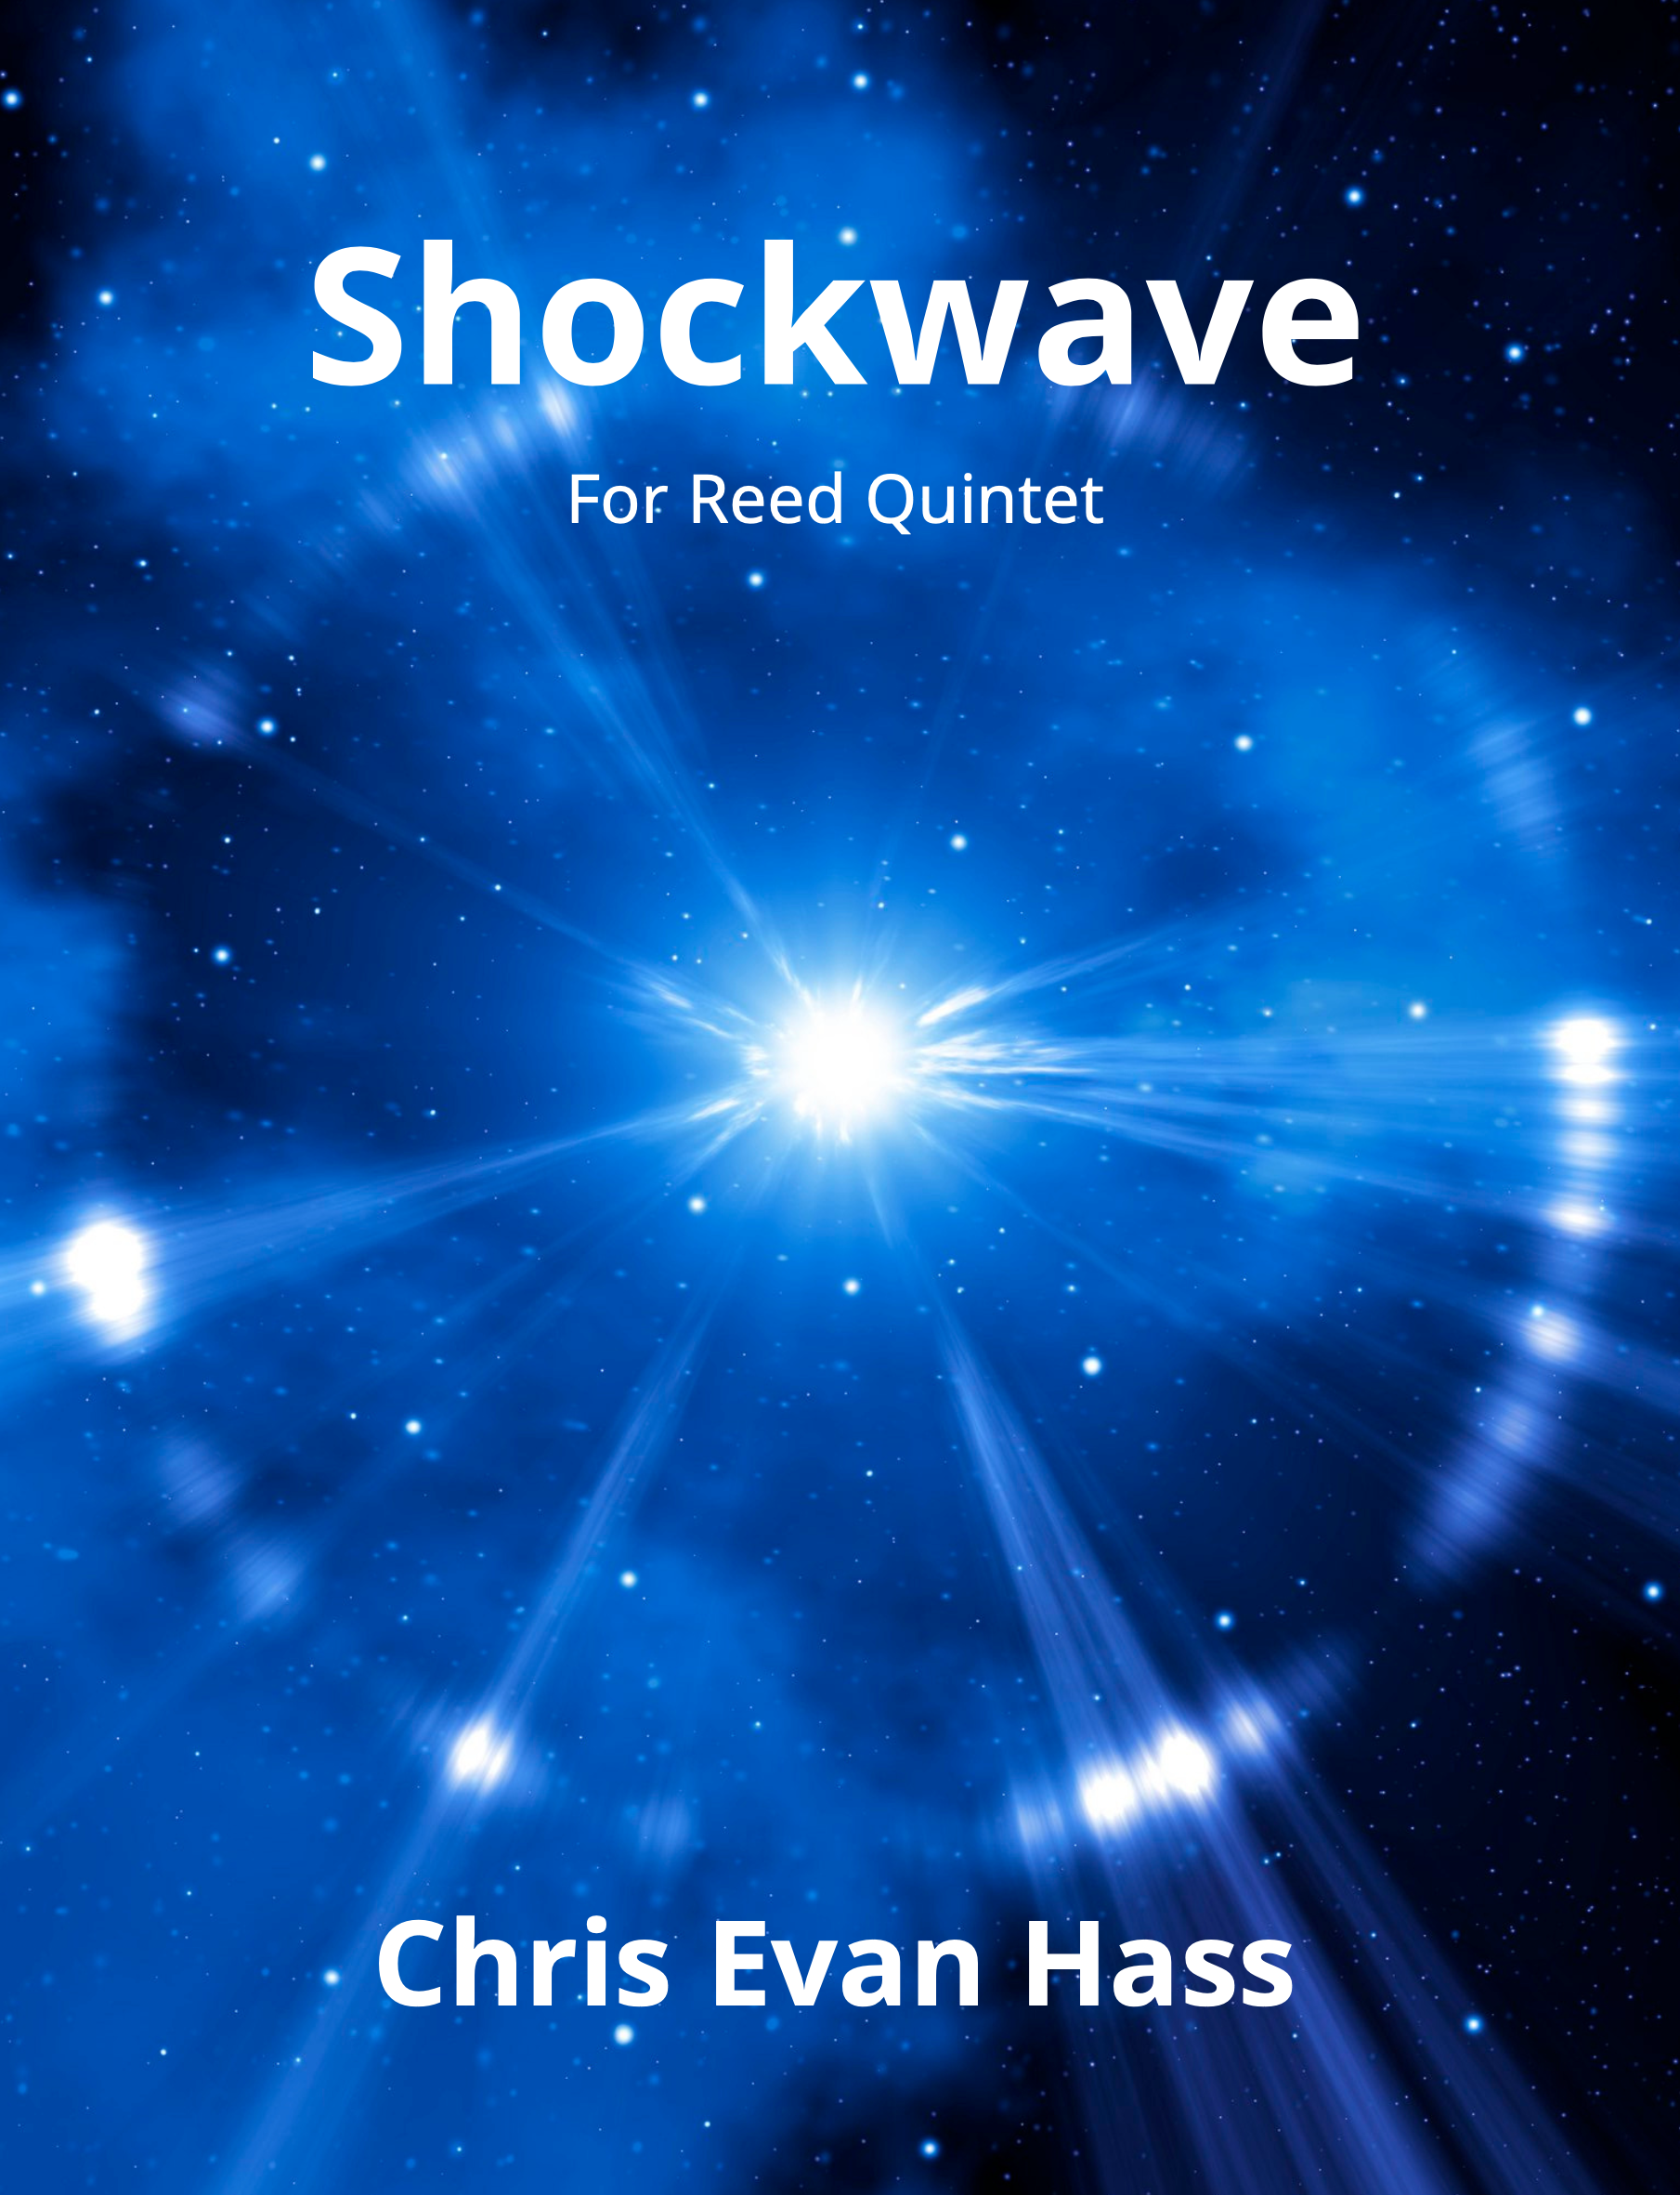 Shockwave by Chris Evan Hass